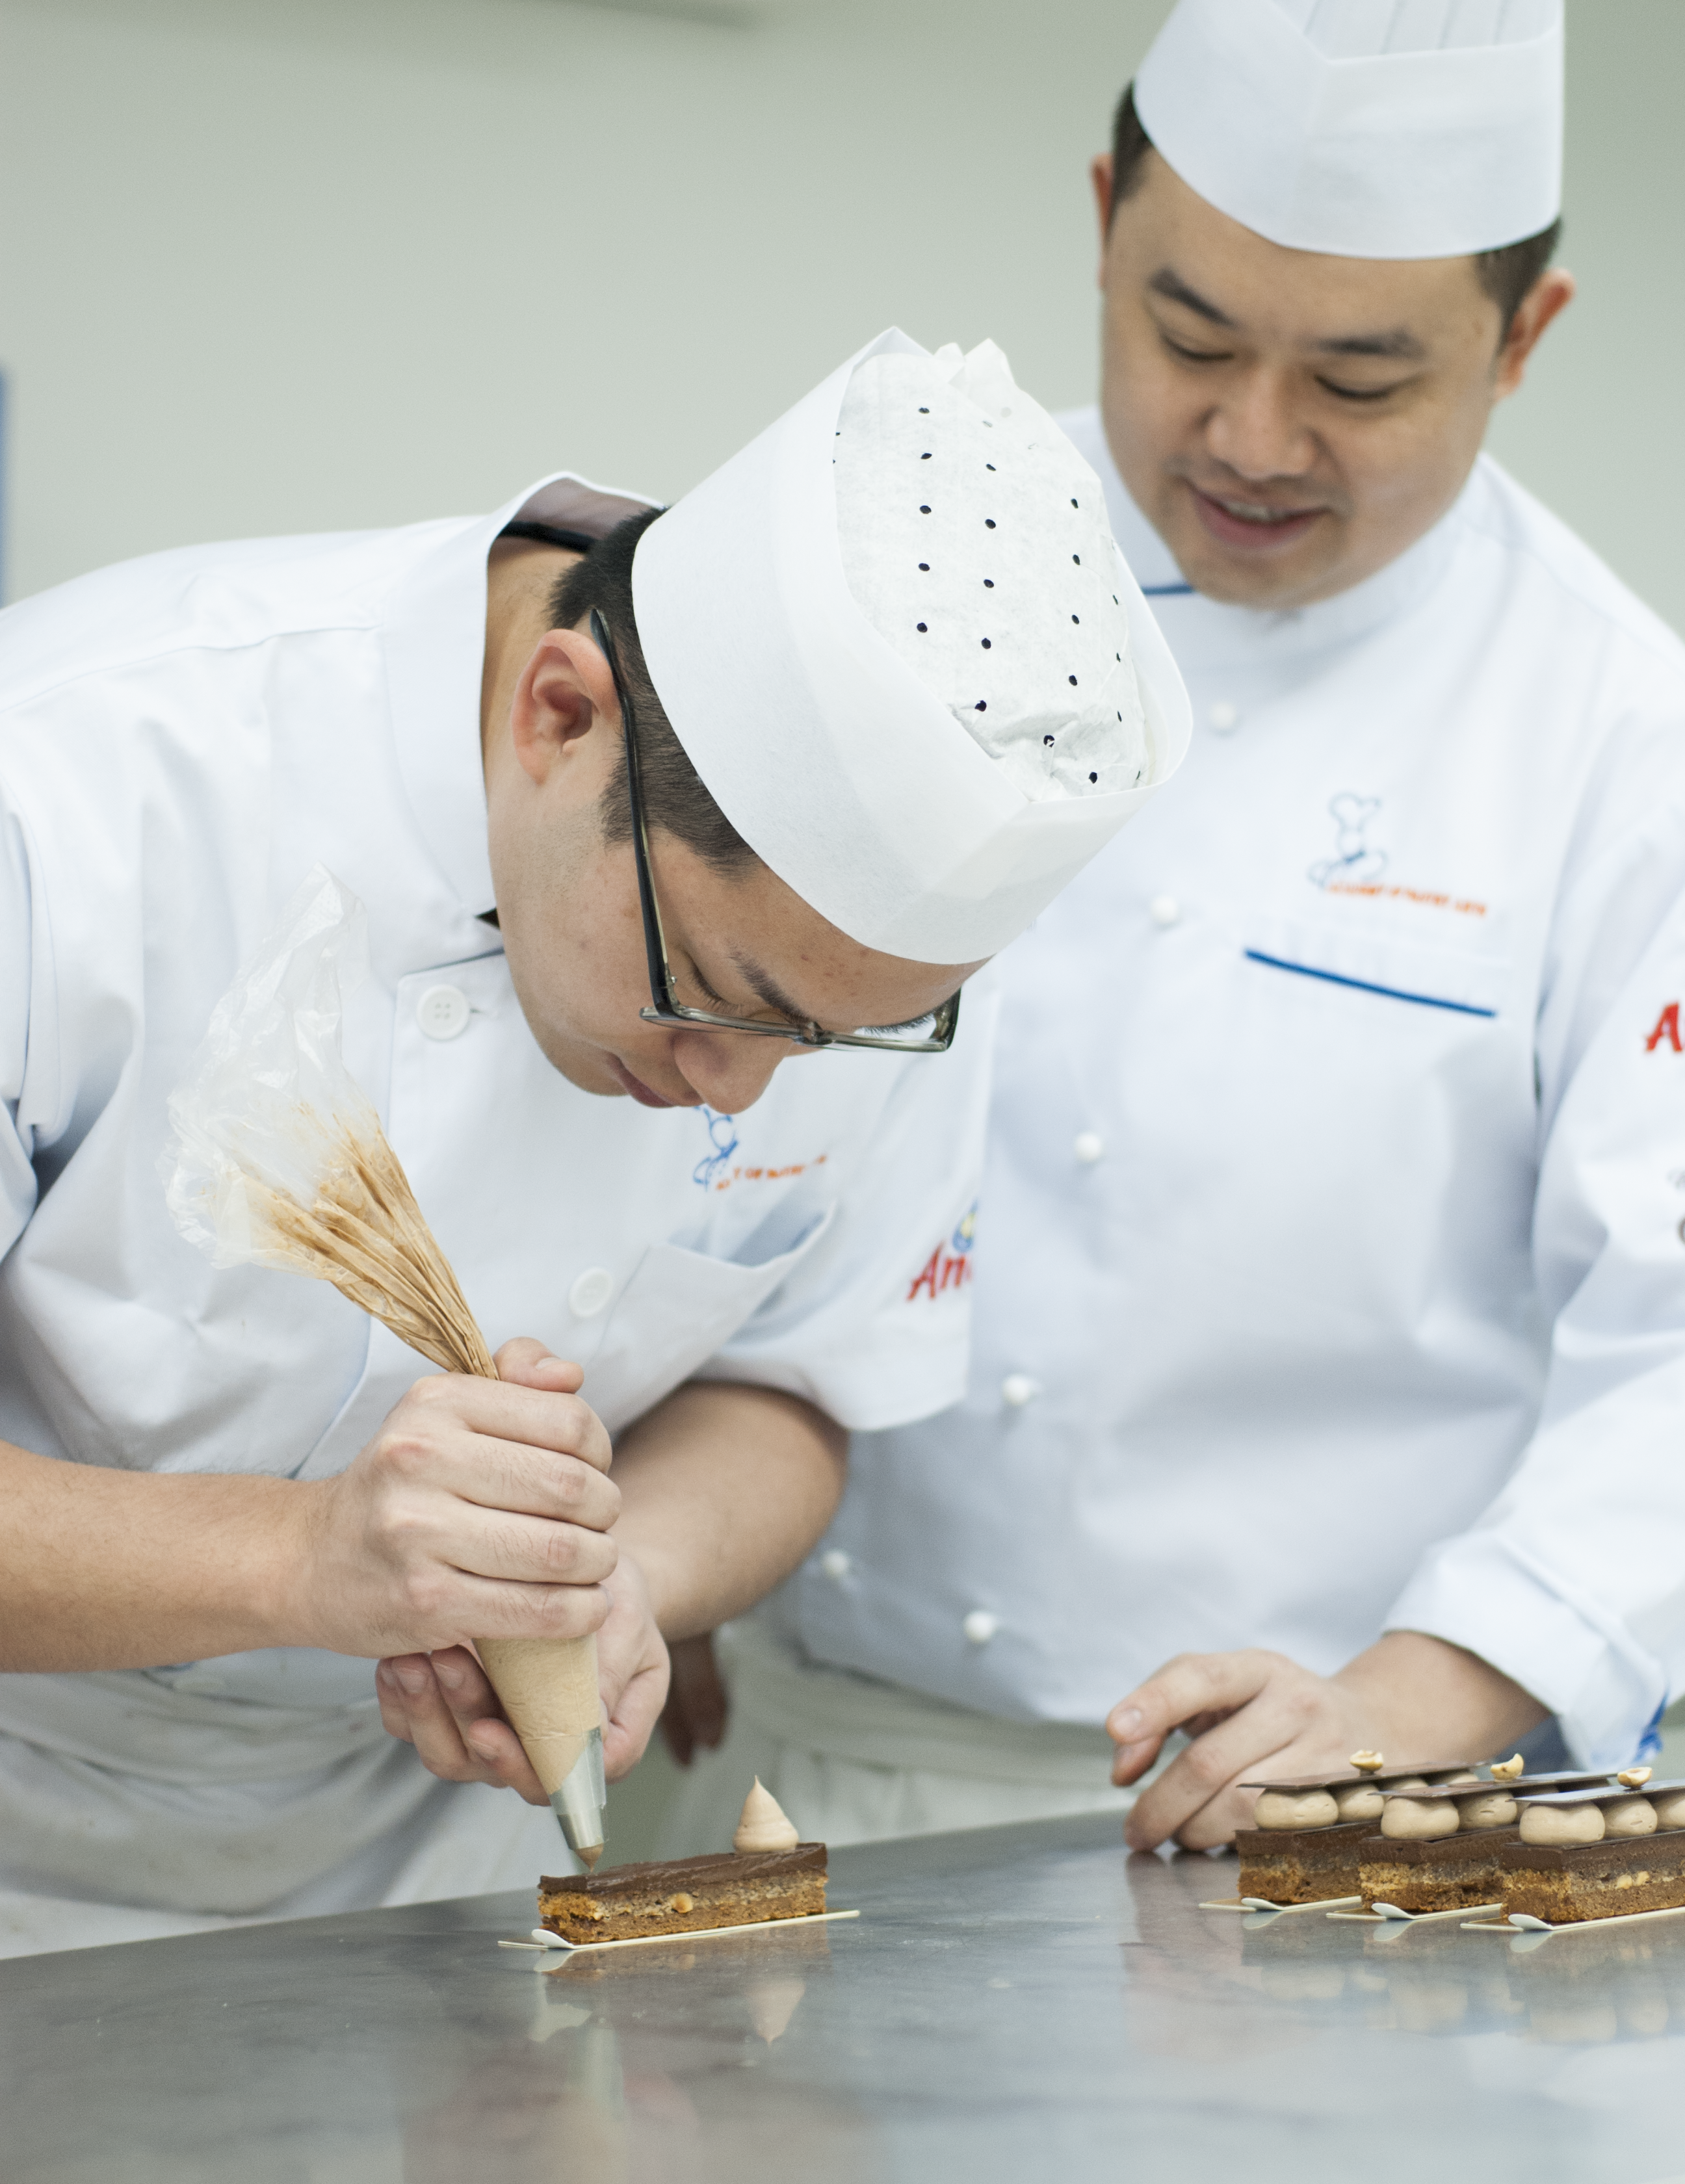 Become A Professional Chef